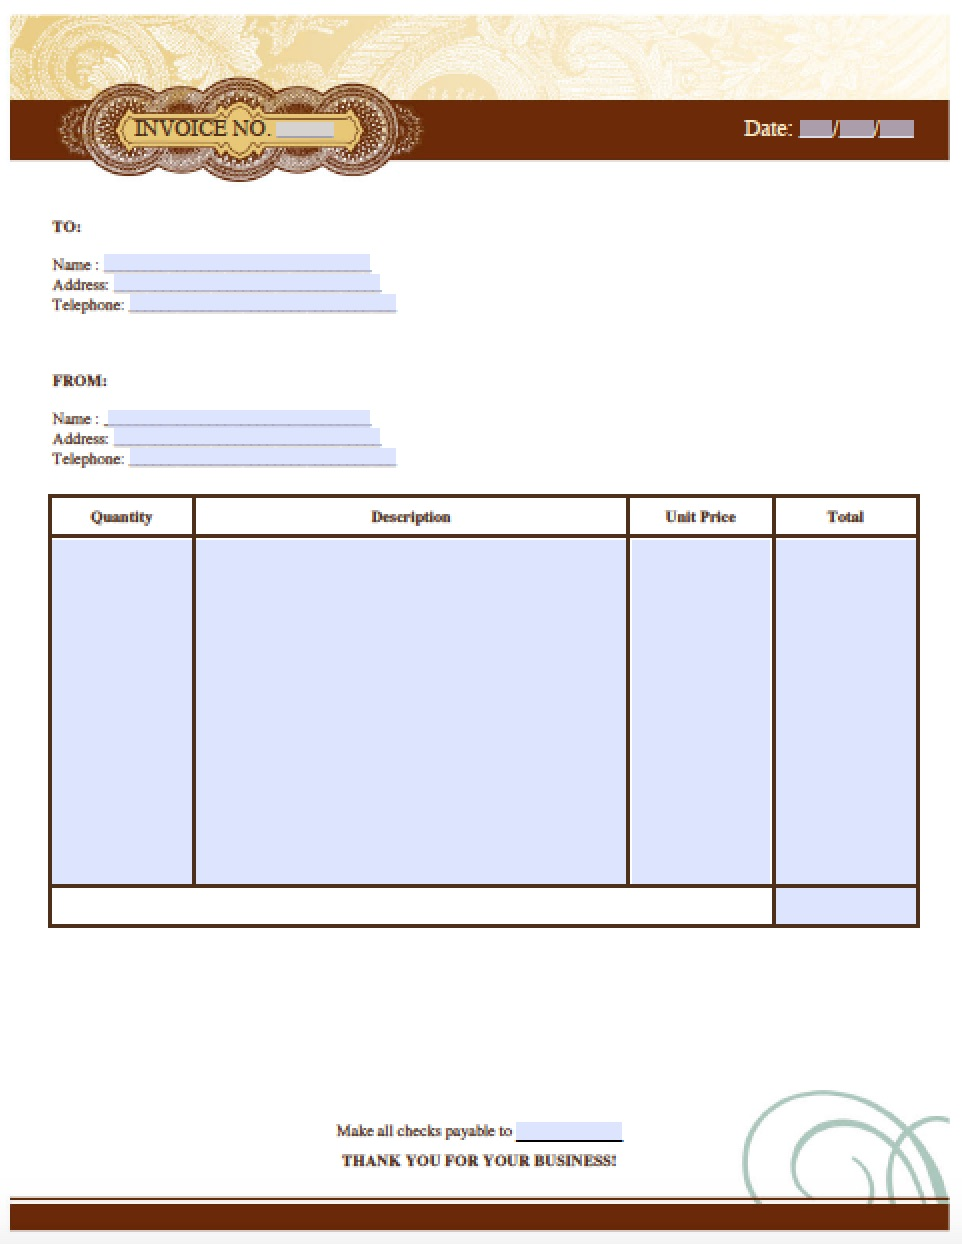 Free Artist Invoice Template Excel PDF Word Doc - Invoice format in word doc for service business